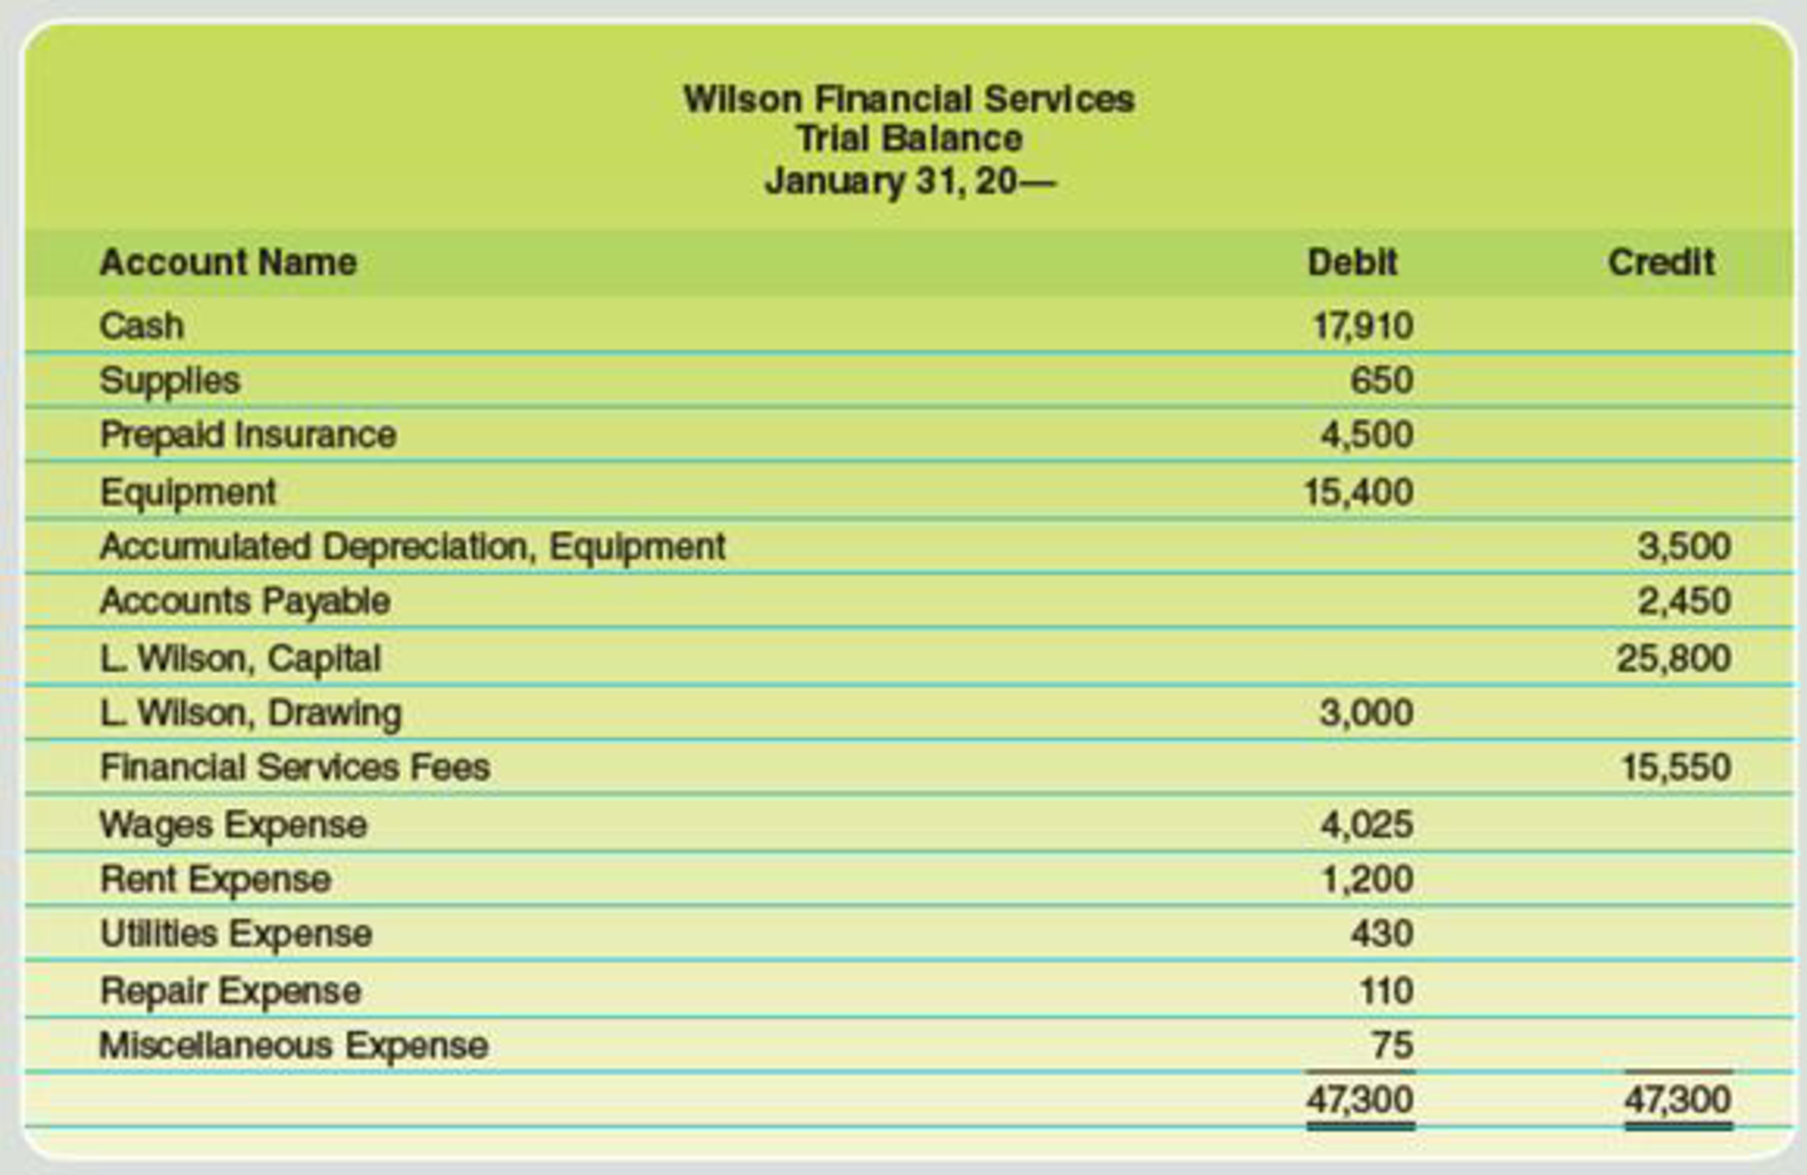 Chapter 4, Problem 5PB, The trial balance for Wilson Financial Services on January 31 is as follows: Data for month-end